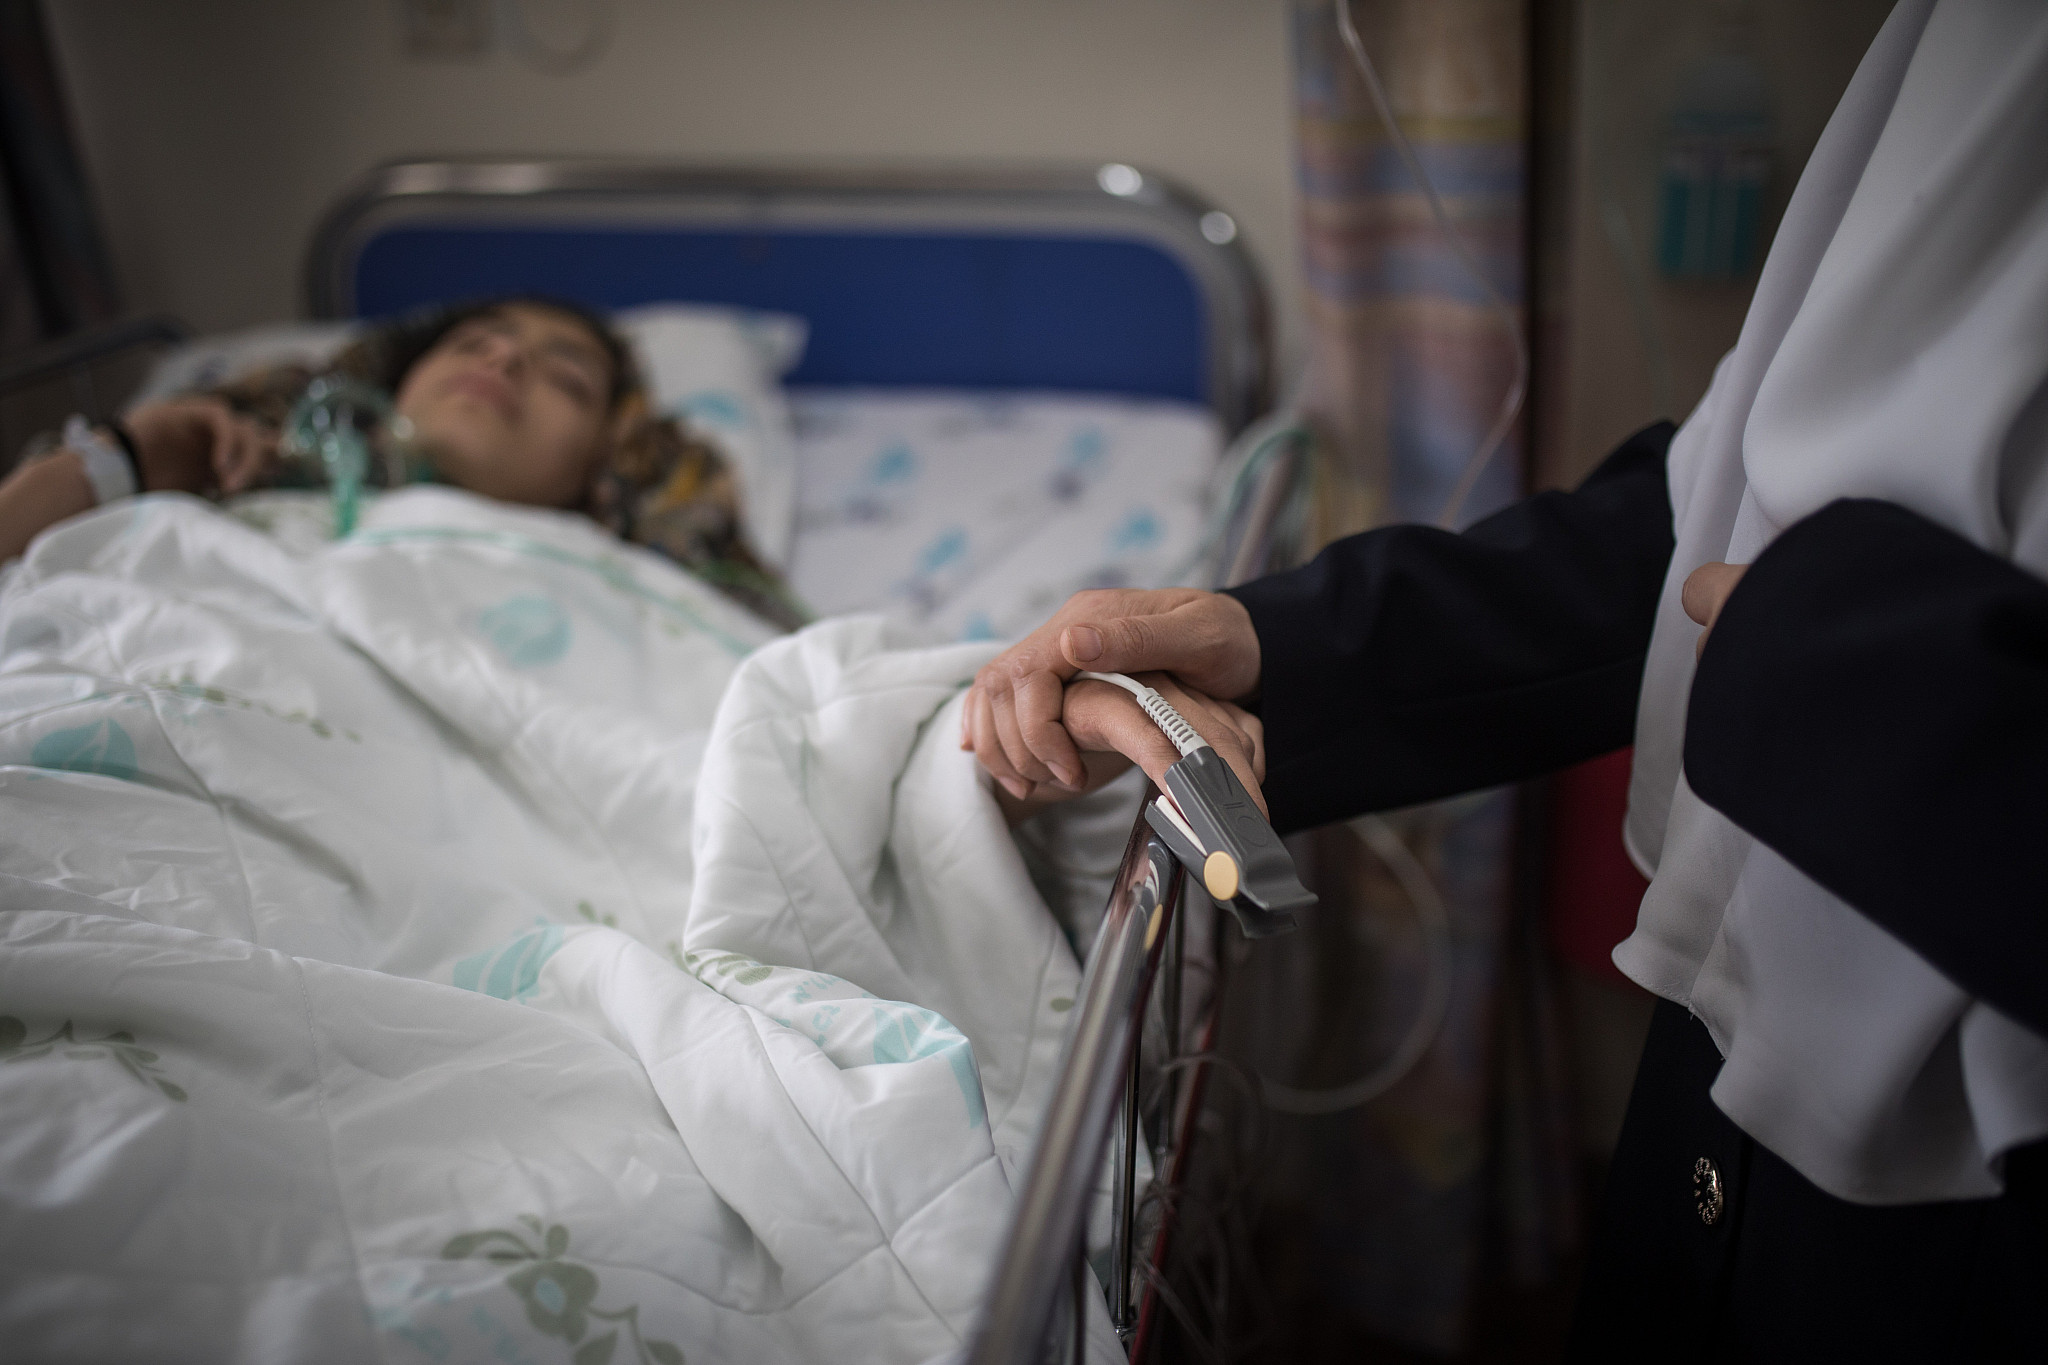 A young Palestinian girl is seen recovering with her mother by her side after going through a cardiac catheterization at the Wolfson Medical Center in the central Israeli city of Holon, on April 11, 2018. (Hadas Parush/Flash90)